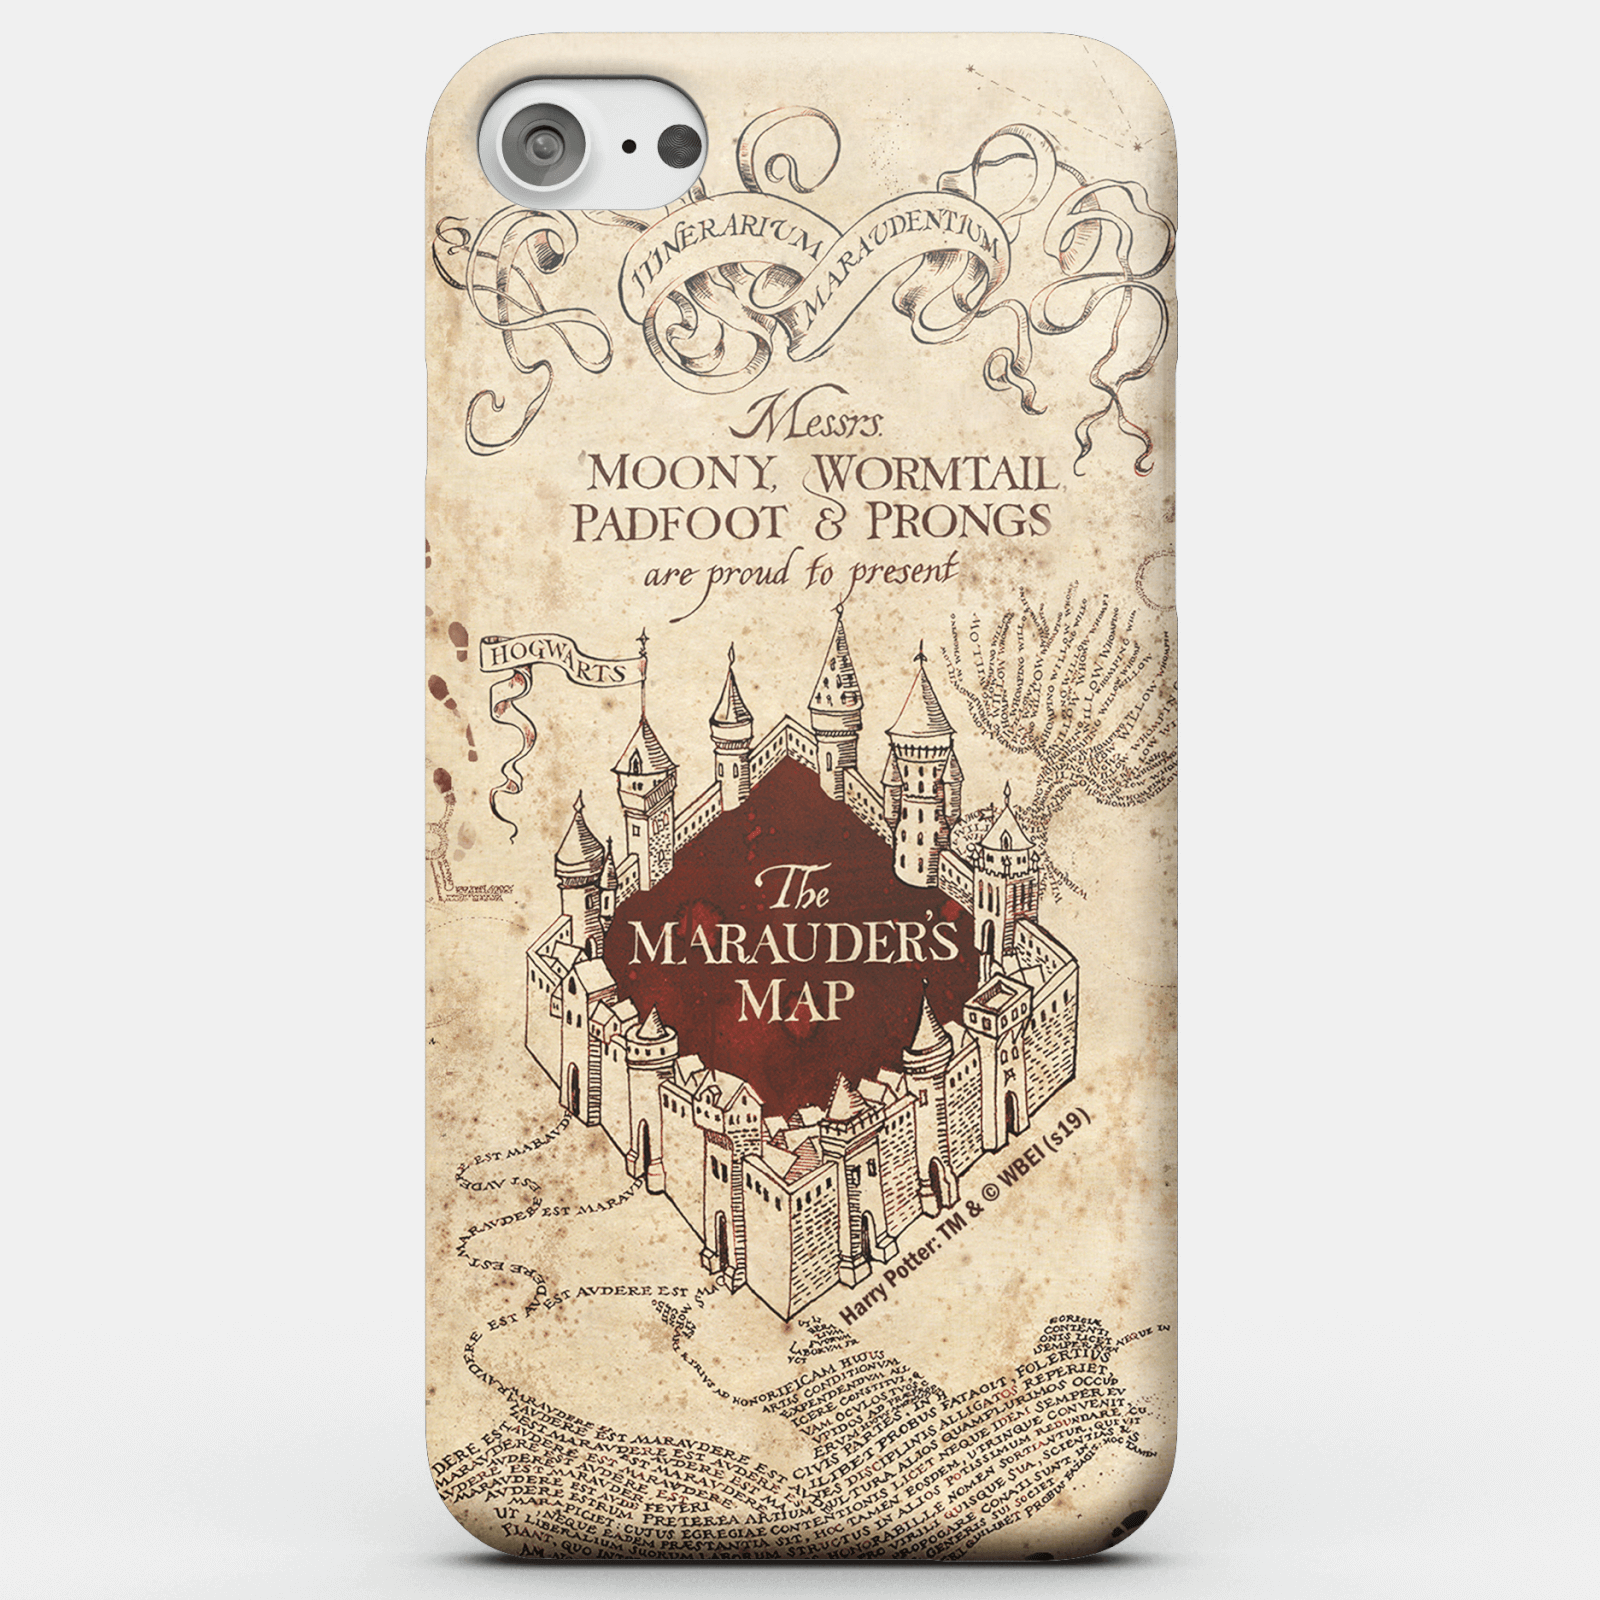 sports shoes 5af98 59885 Harry Potter Phonecases Marauders Map Phone Case for iPhone and Android